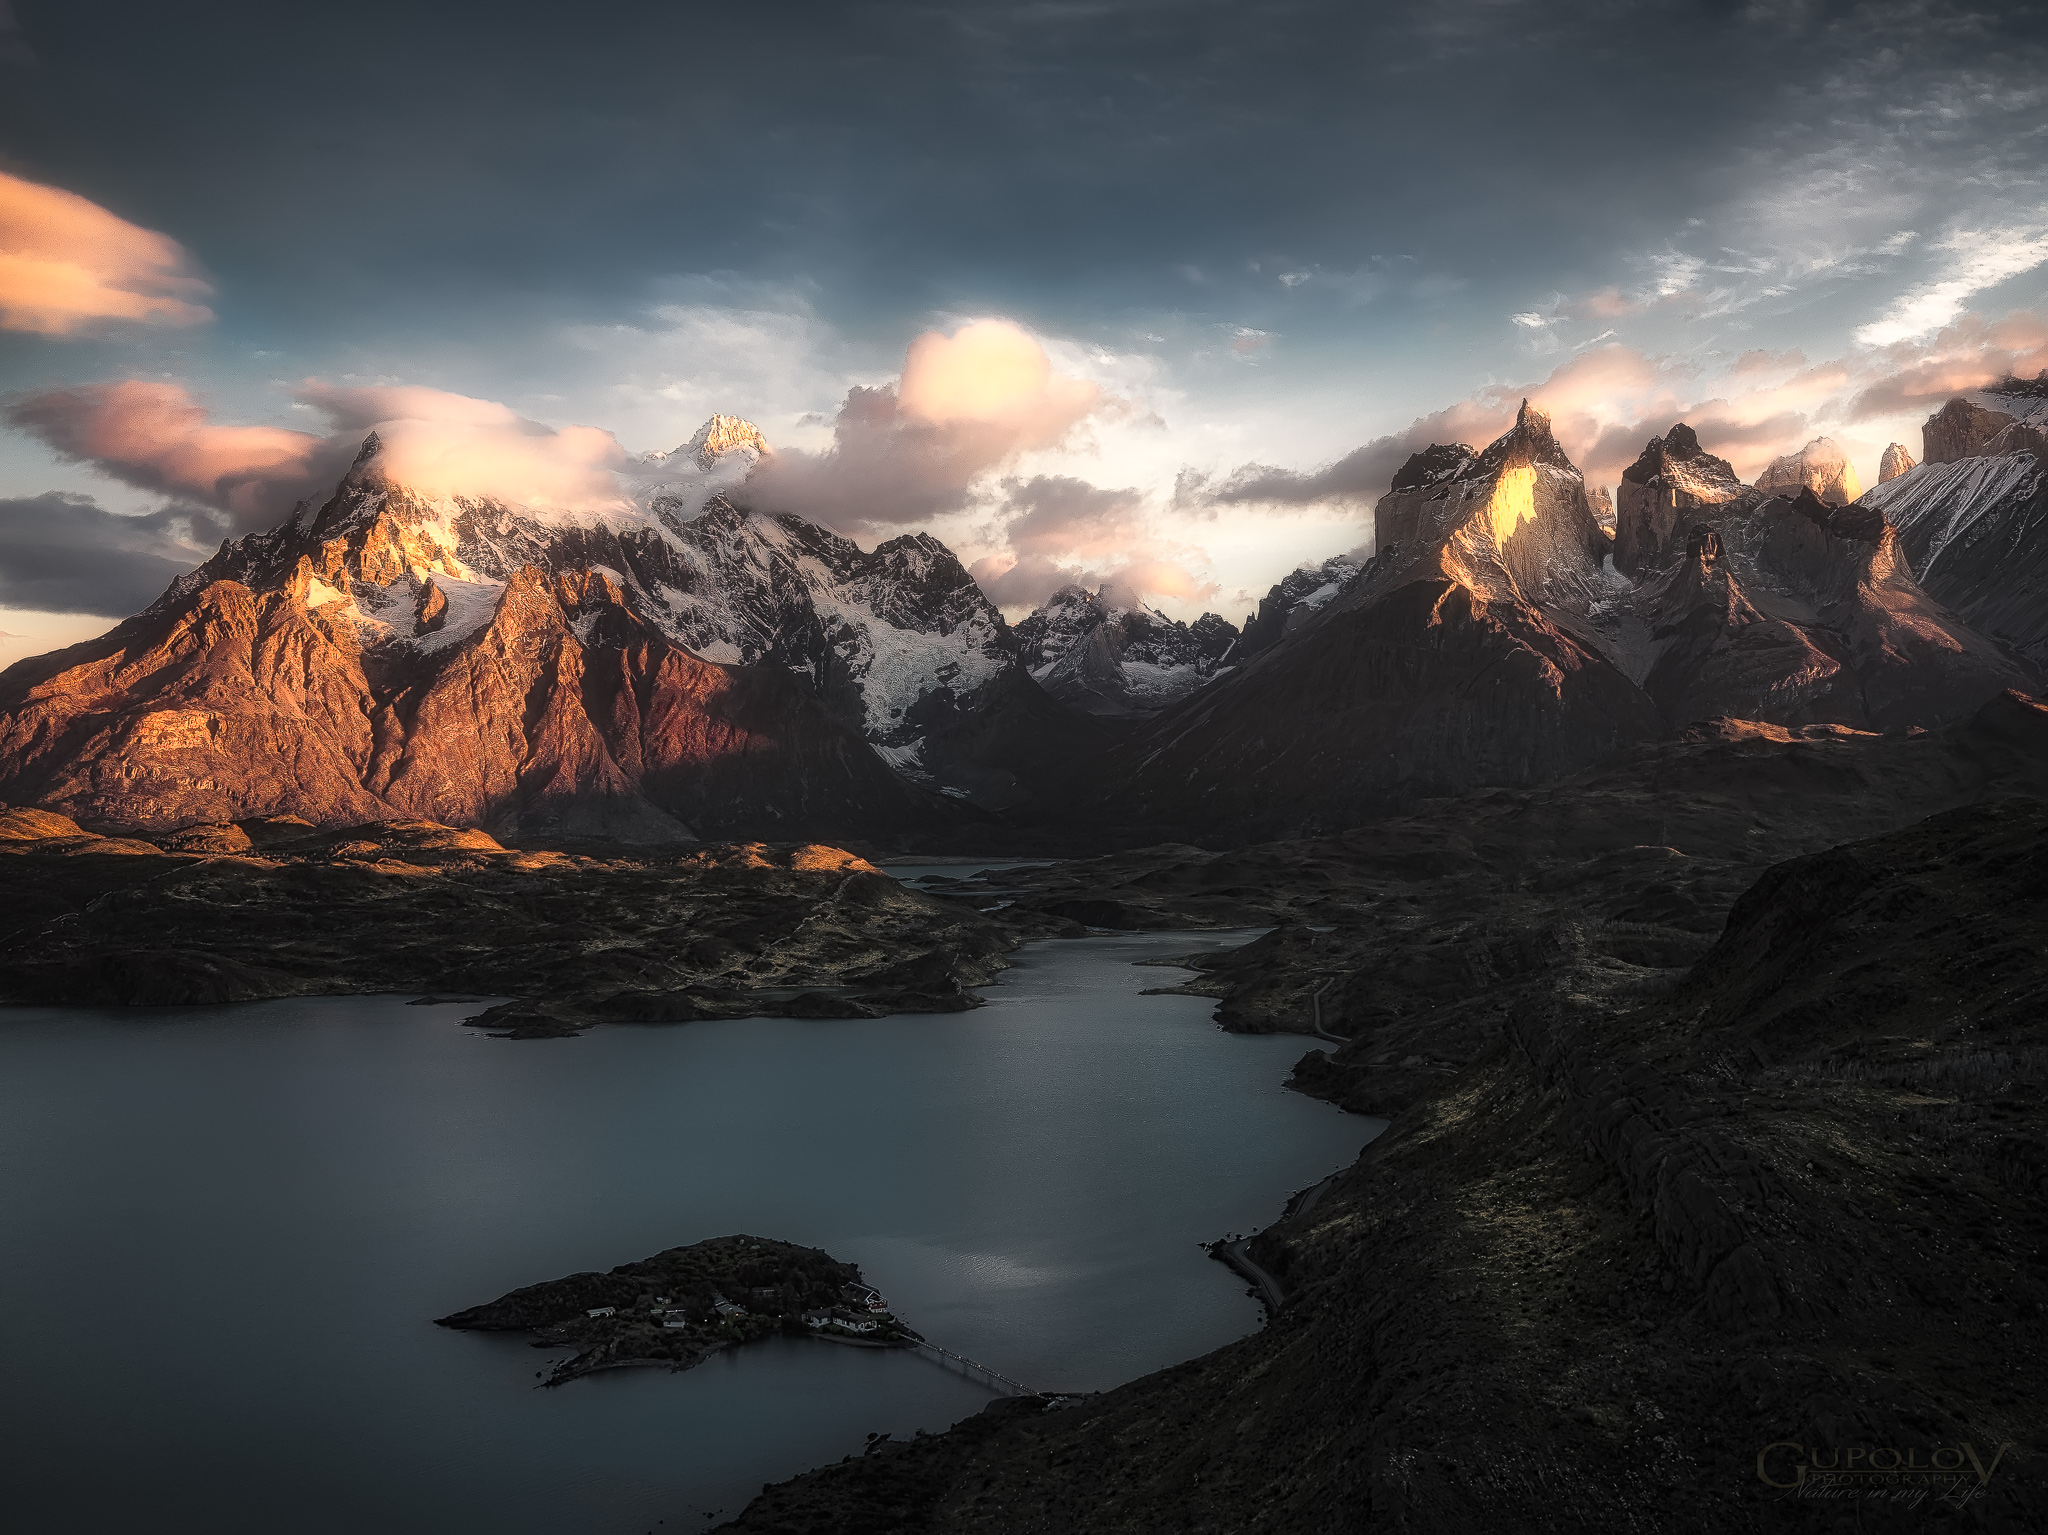 View of the Torres del Paine Mountains and Lake Pehoe, Chile